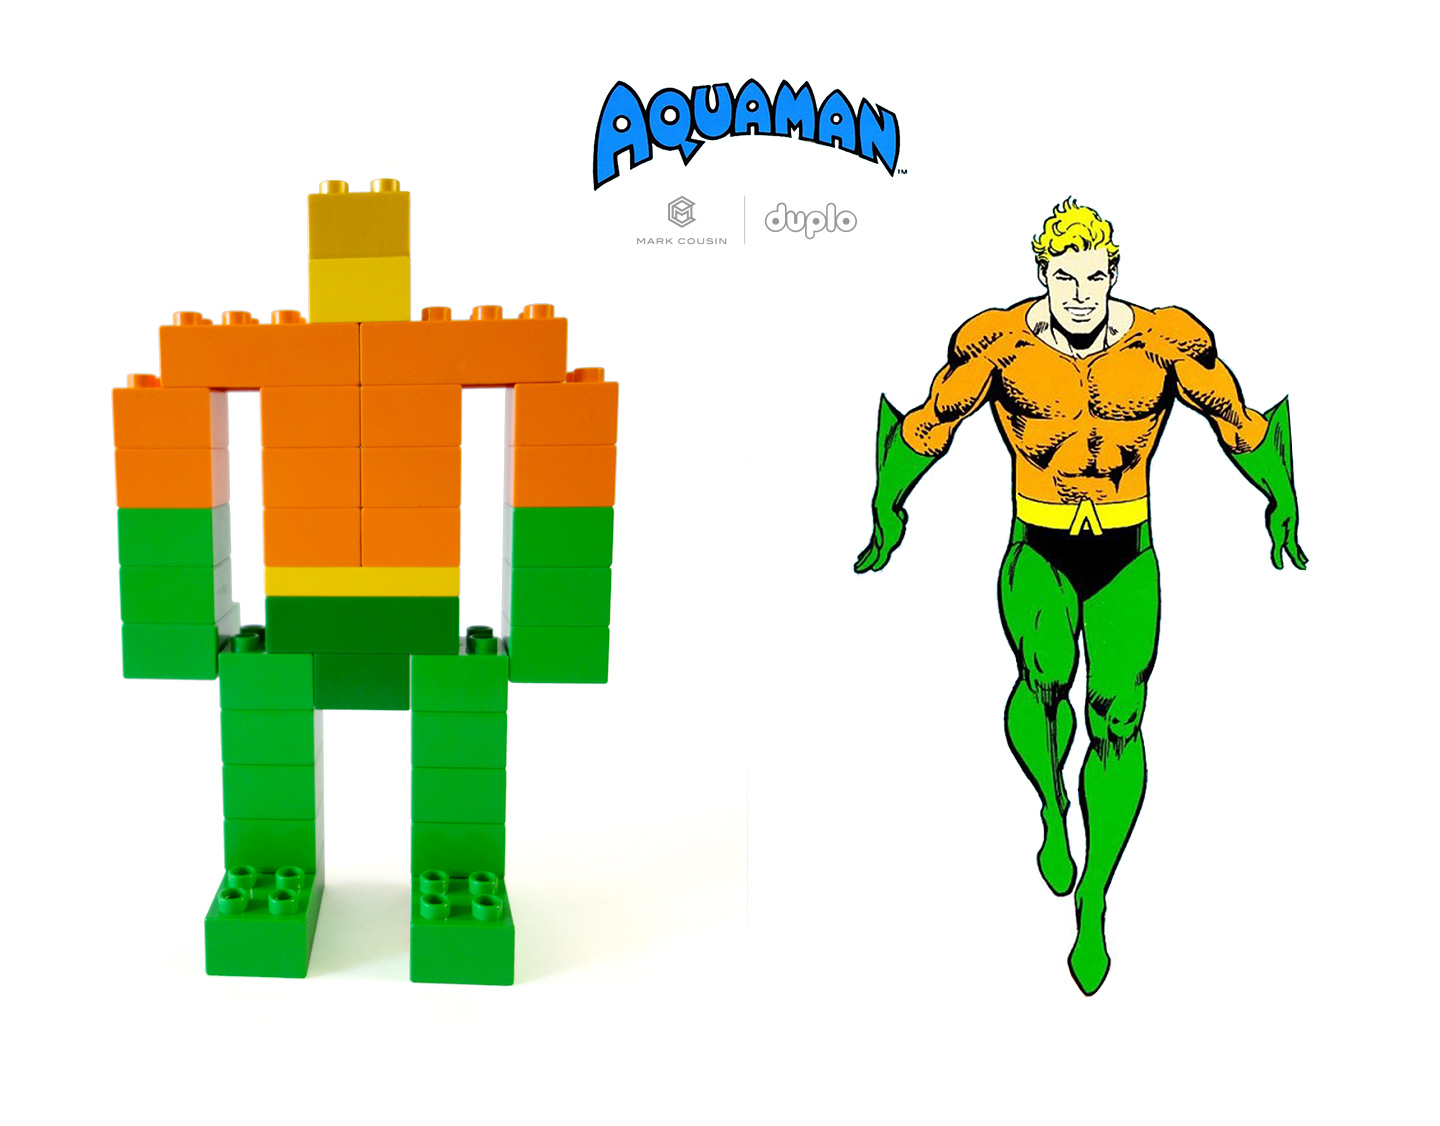 Aquaman_MC_Duplo